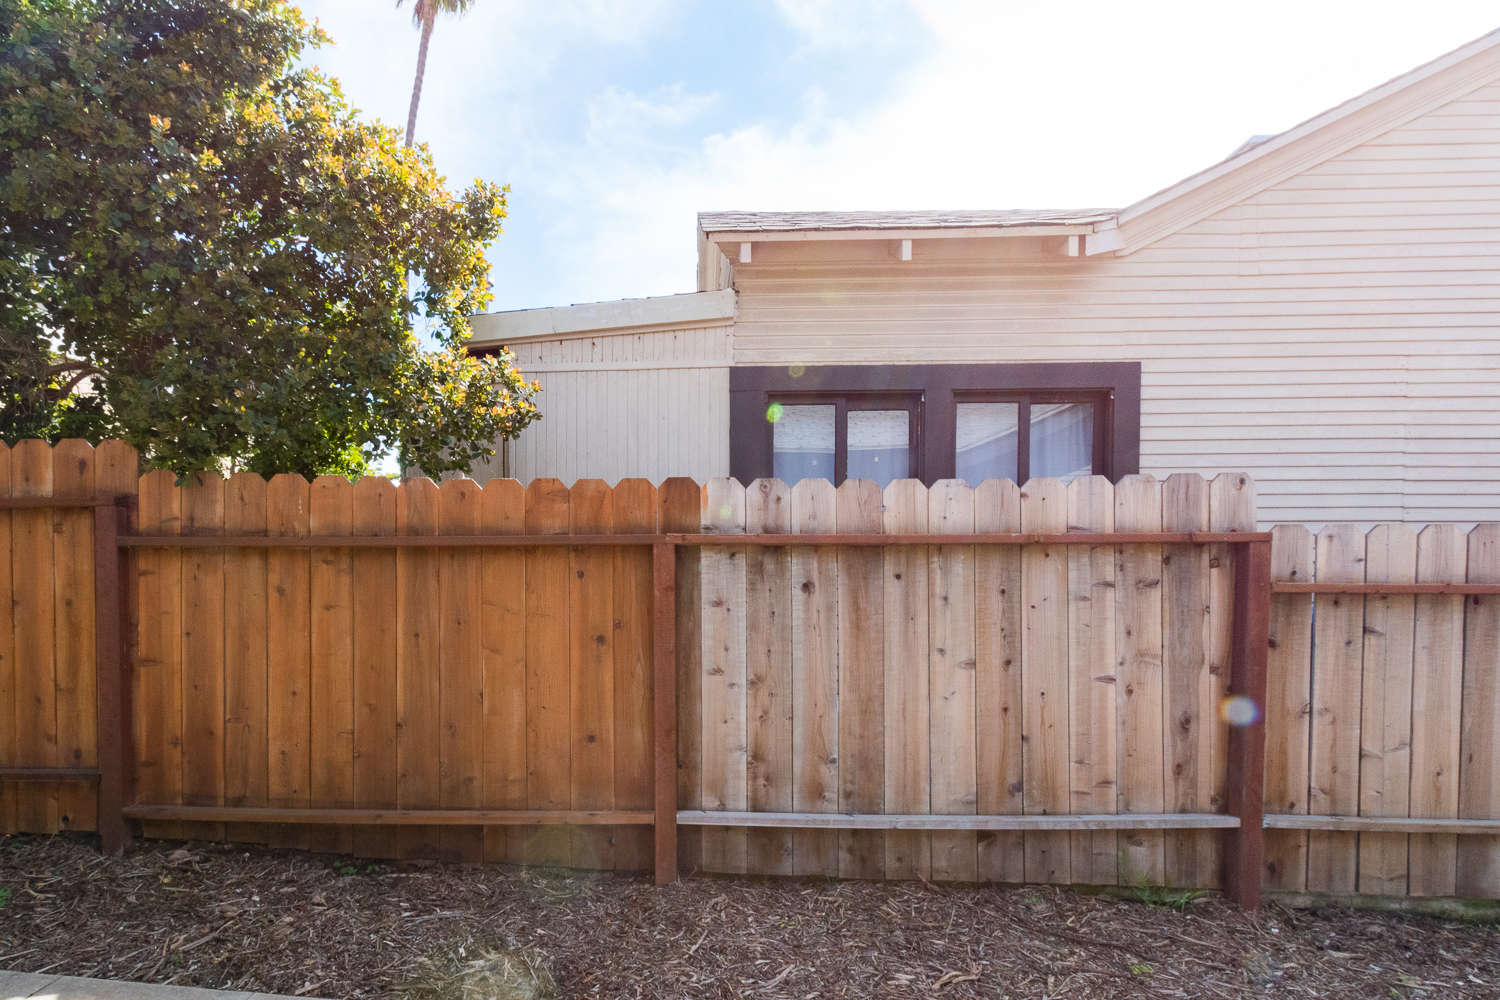 The Gold Hive How to Refresh a Fence - Powerwash-3.jpg